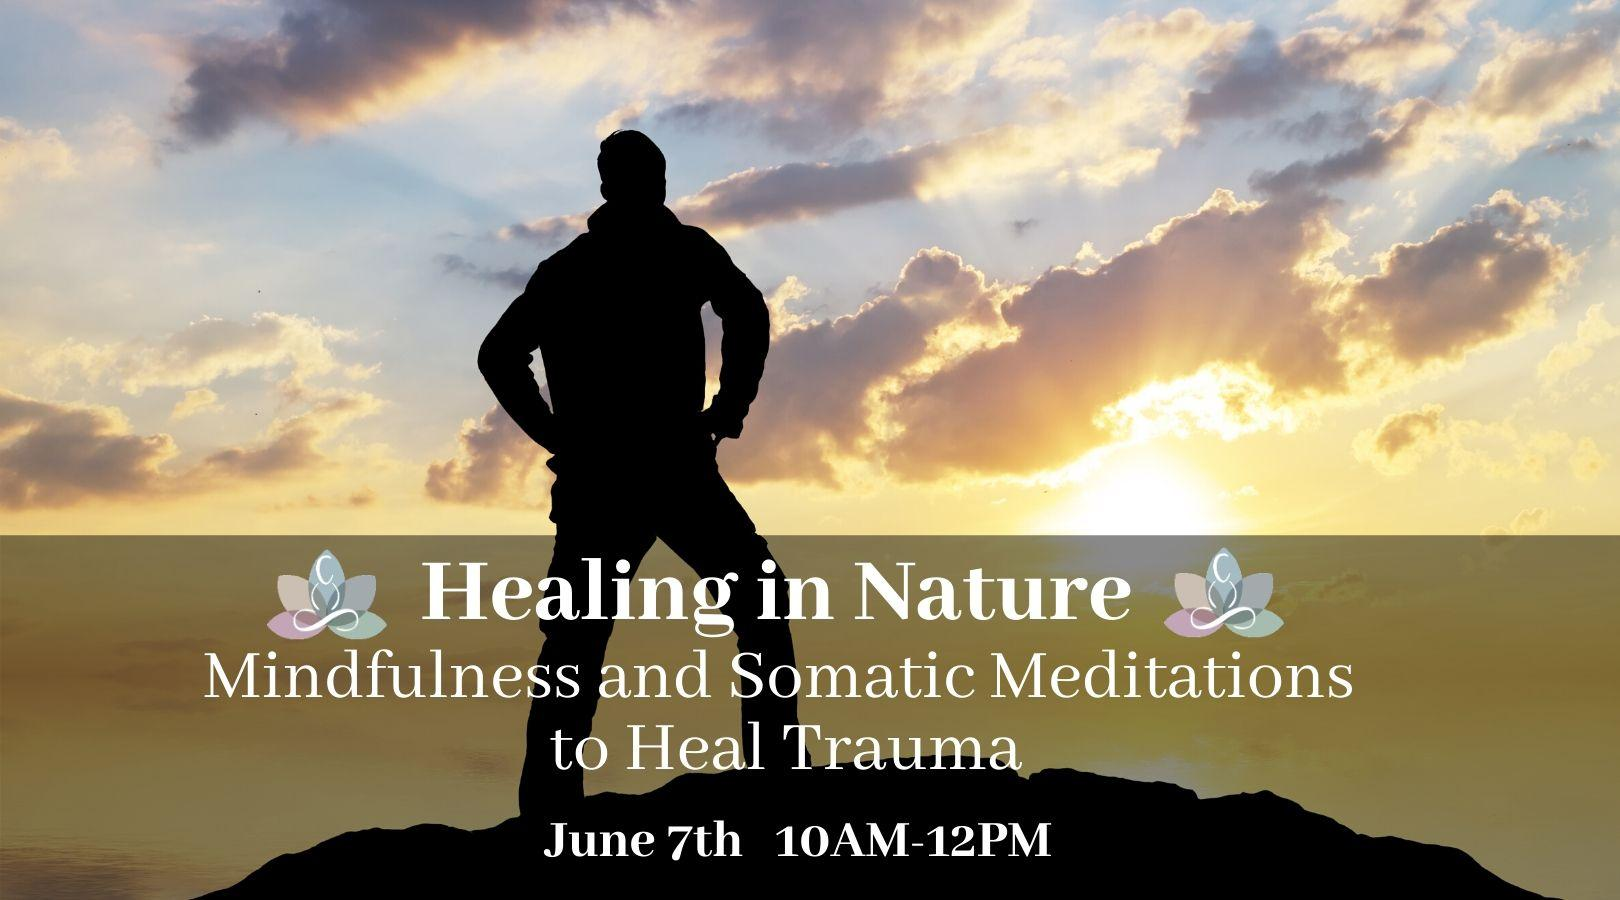 Healing In Nature - Mindfulness and Somatic Meditations to Heal Trauma